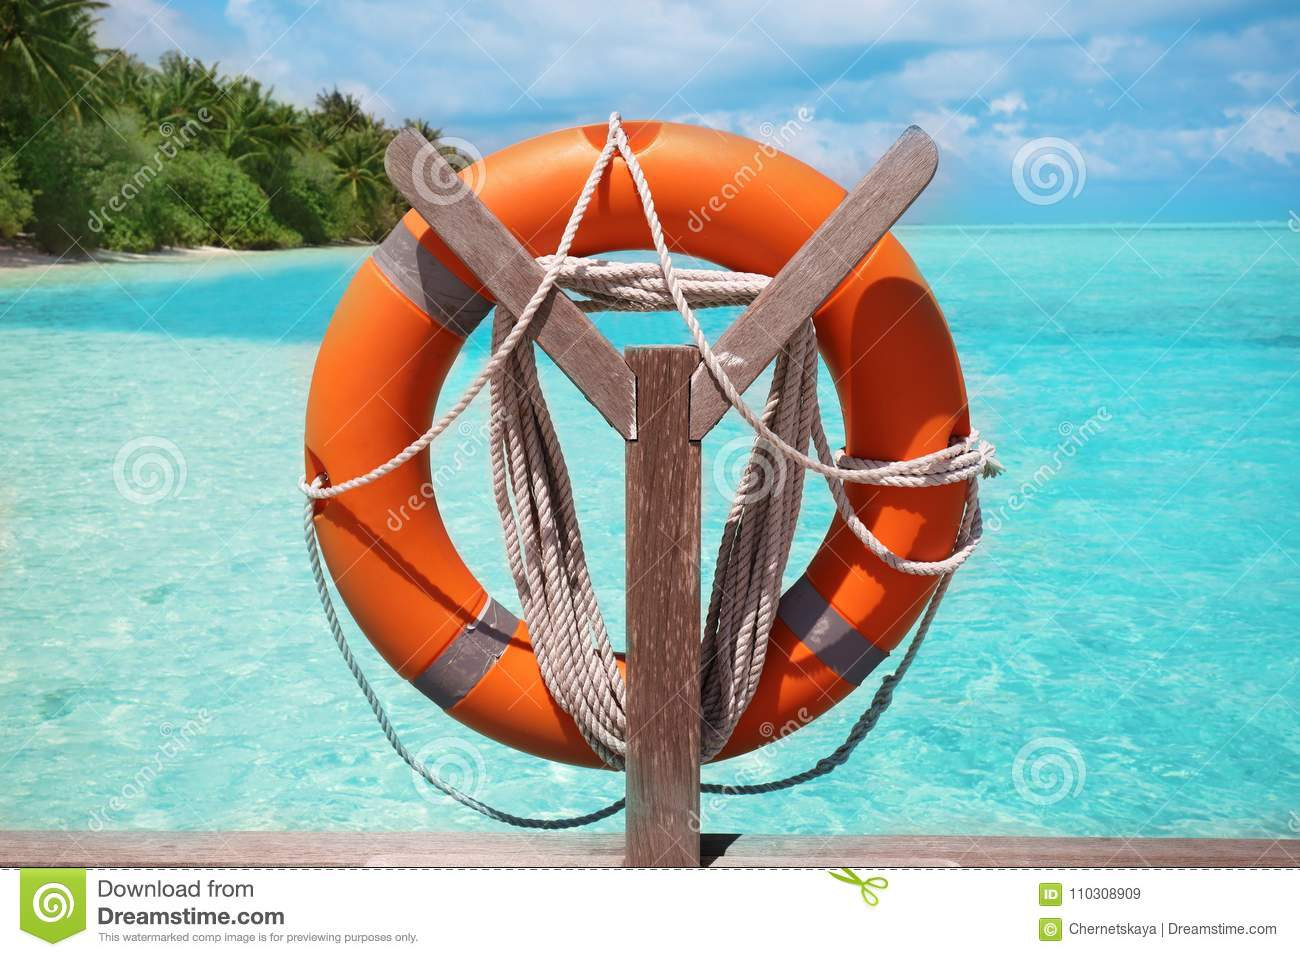 Wooden rack with flotation ring